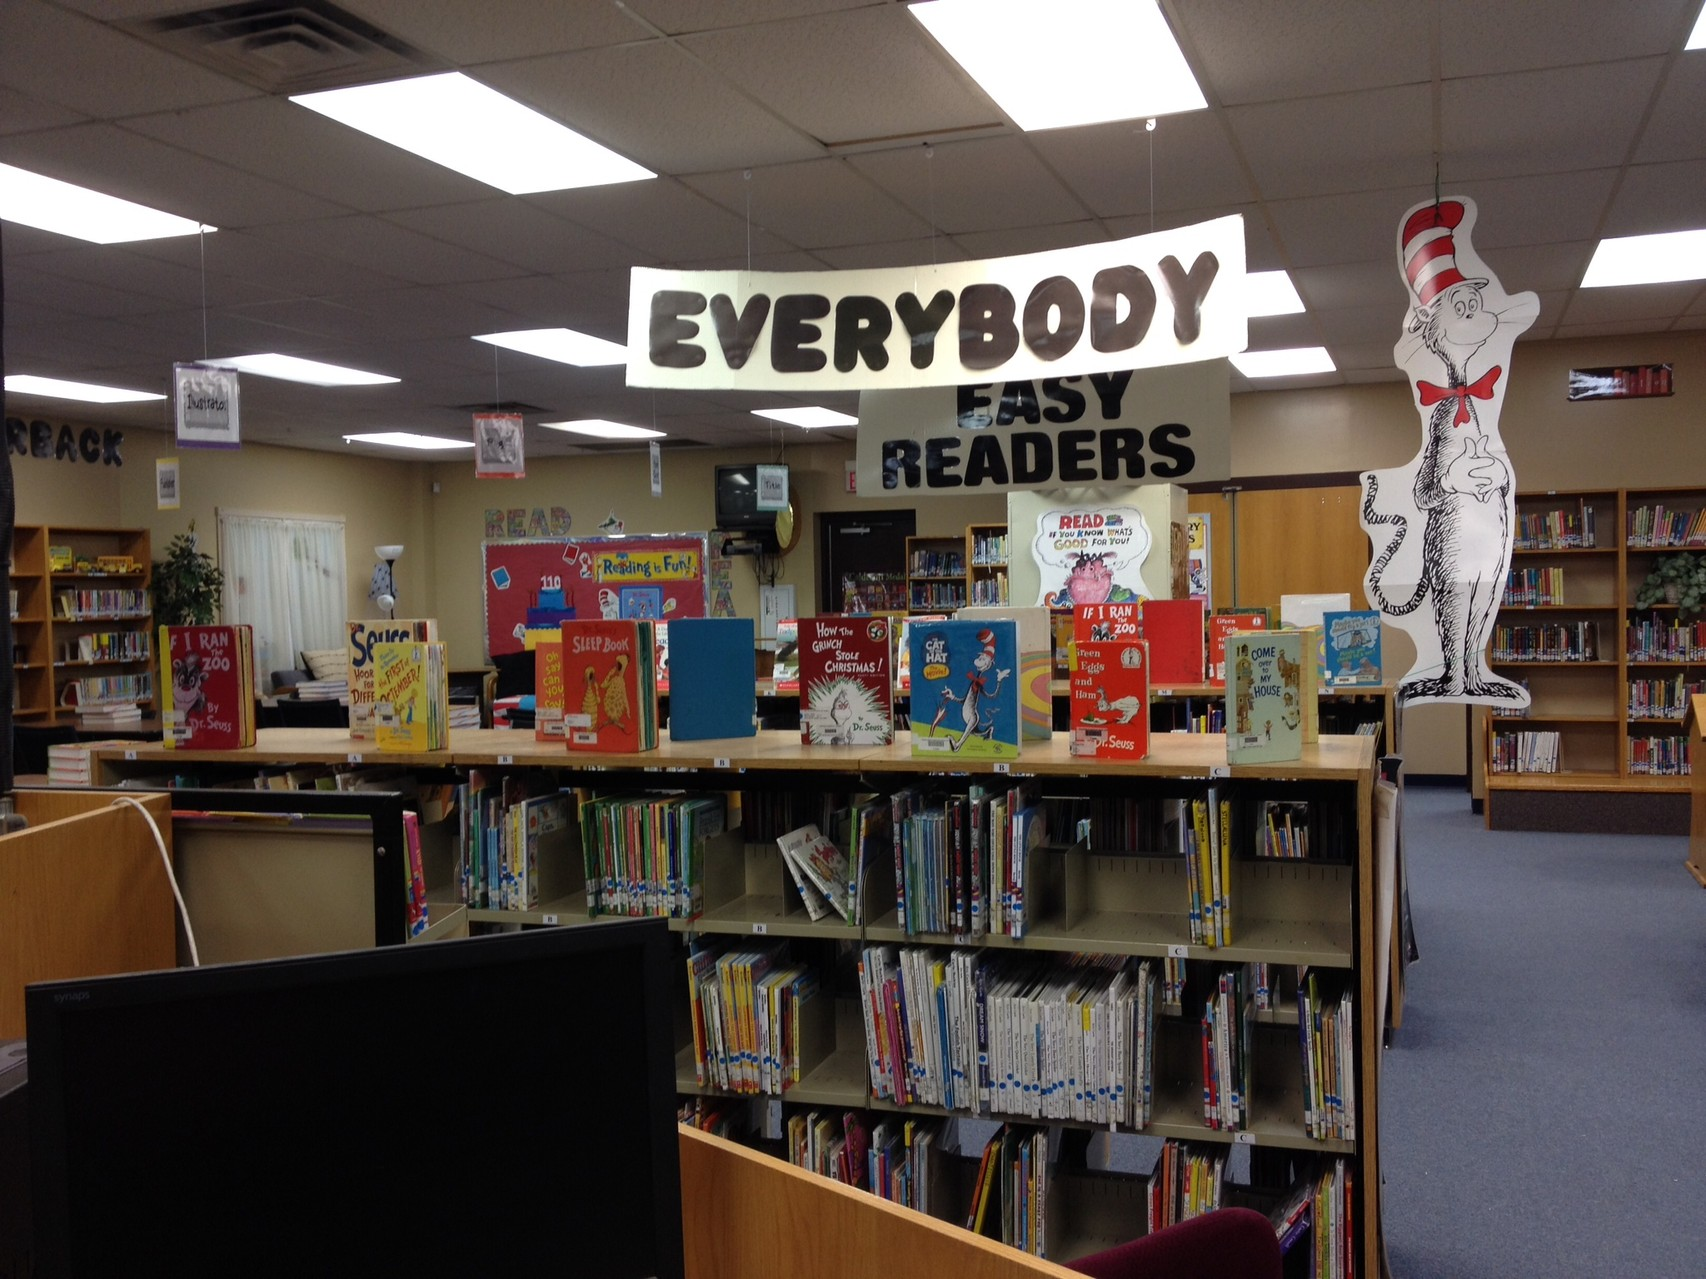 Everybody and Easy Reader Shelves - for all readers